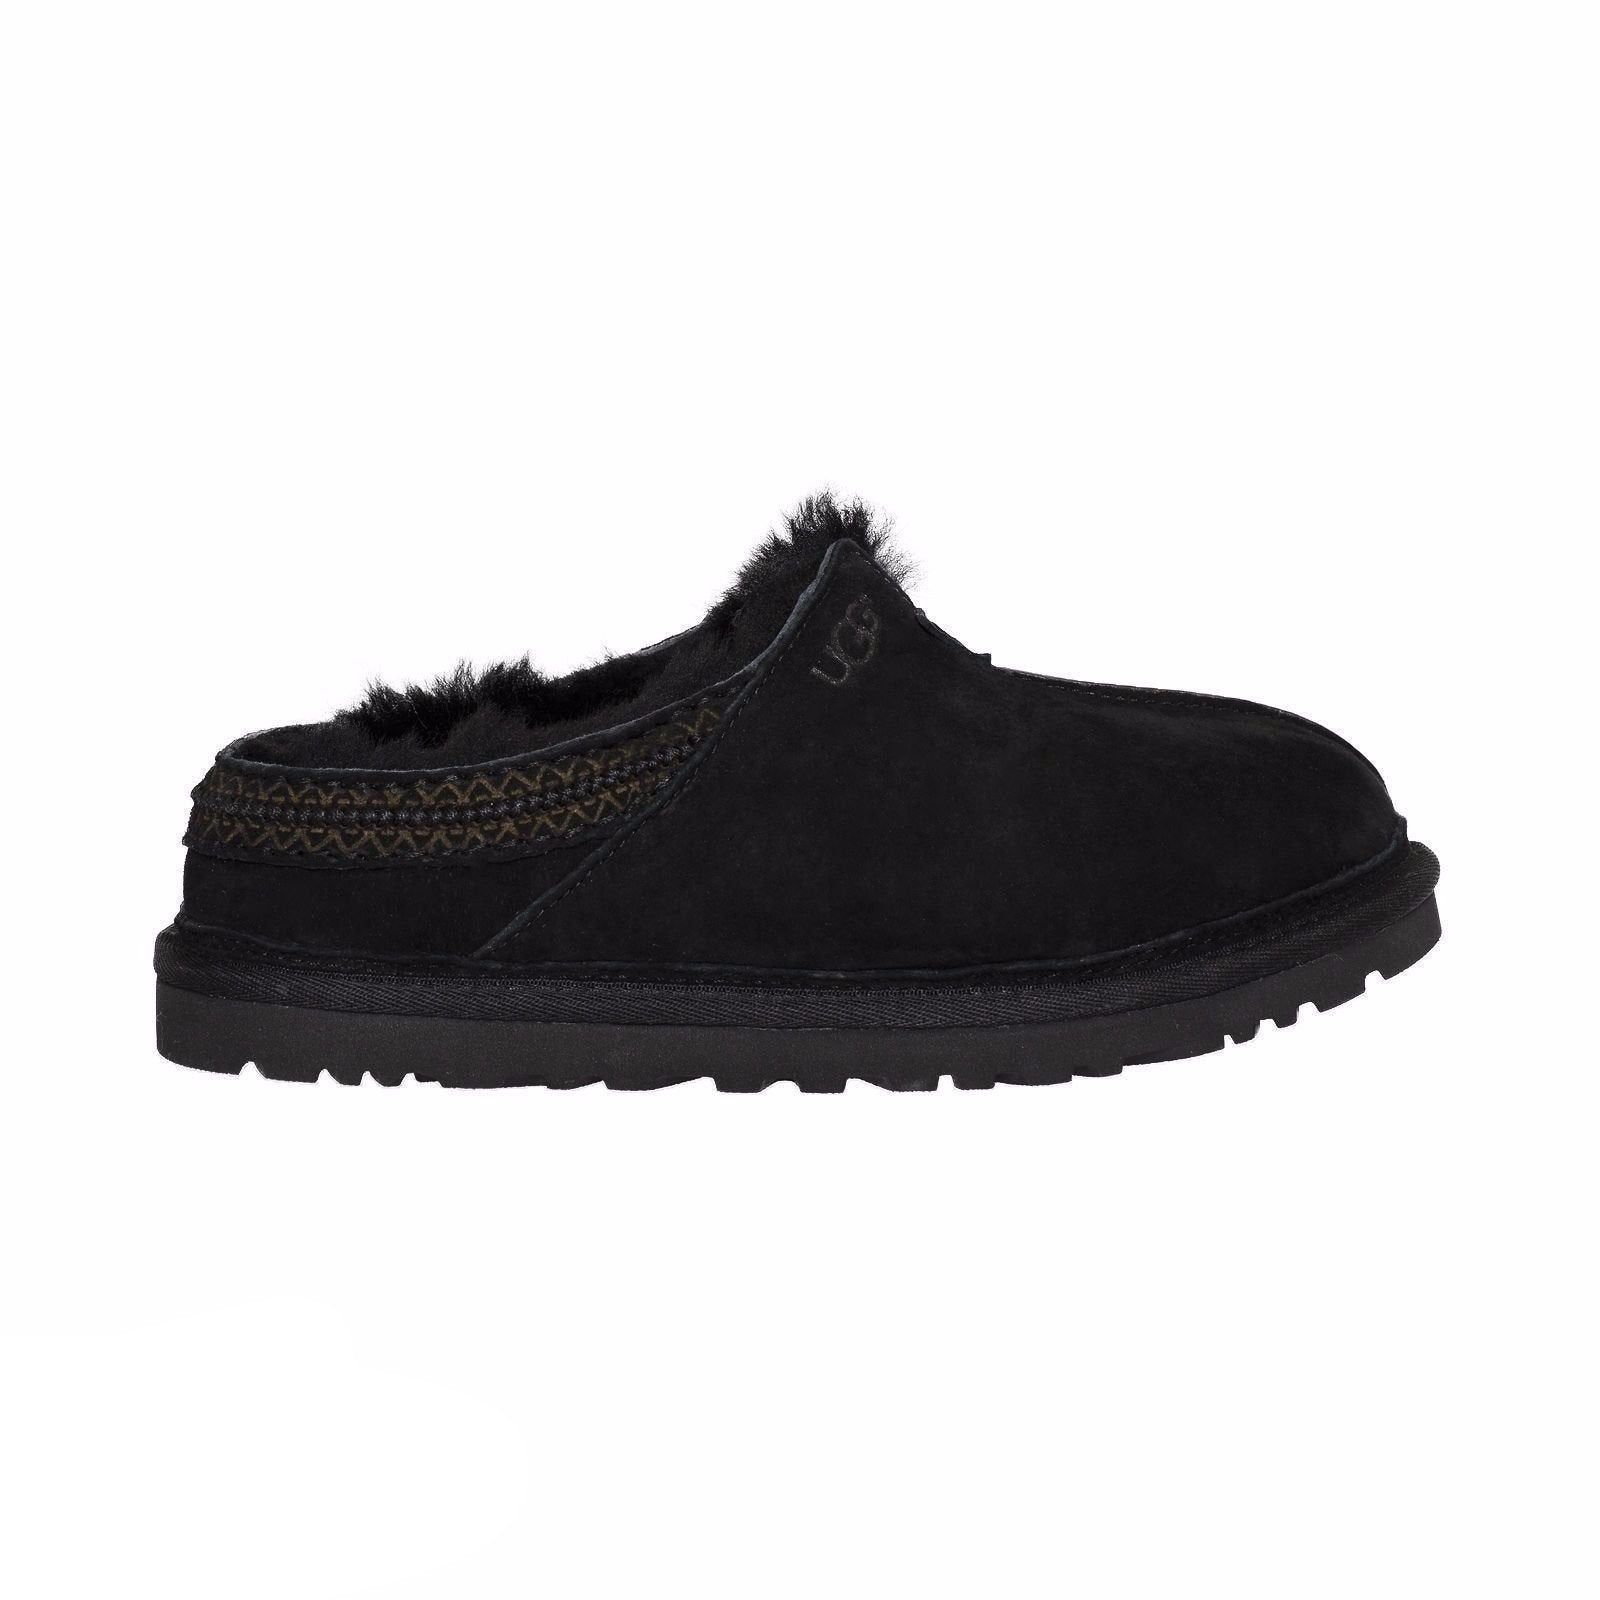 56649ca8df3 UGG Neuman Black Slippers